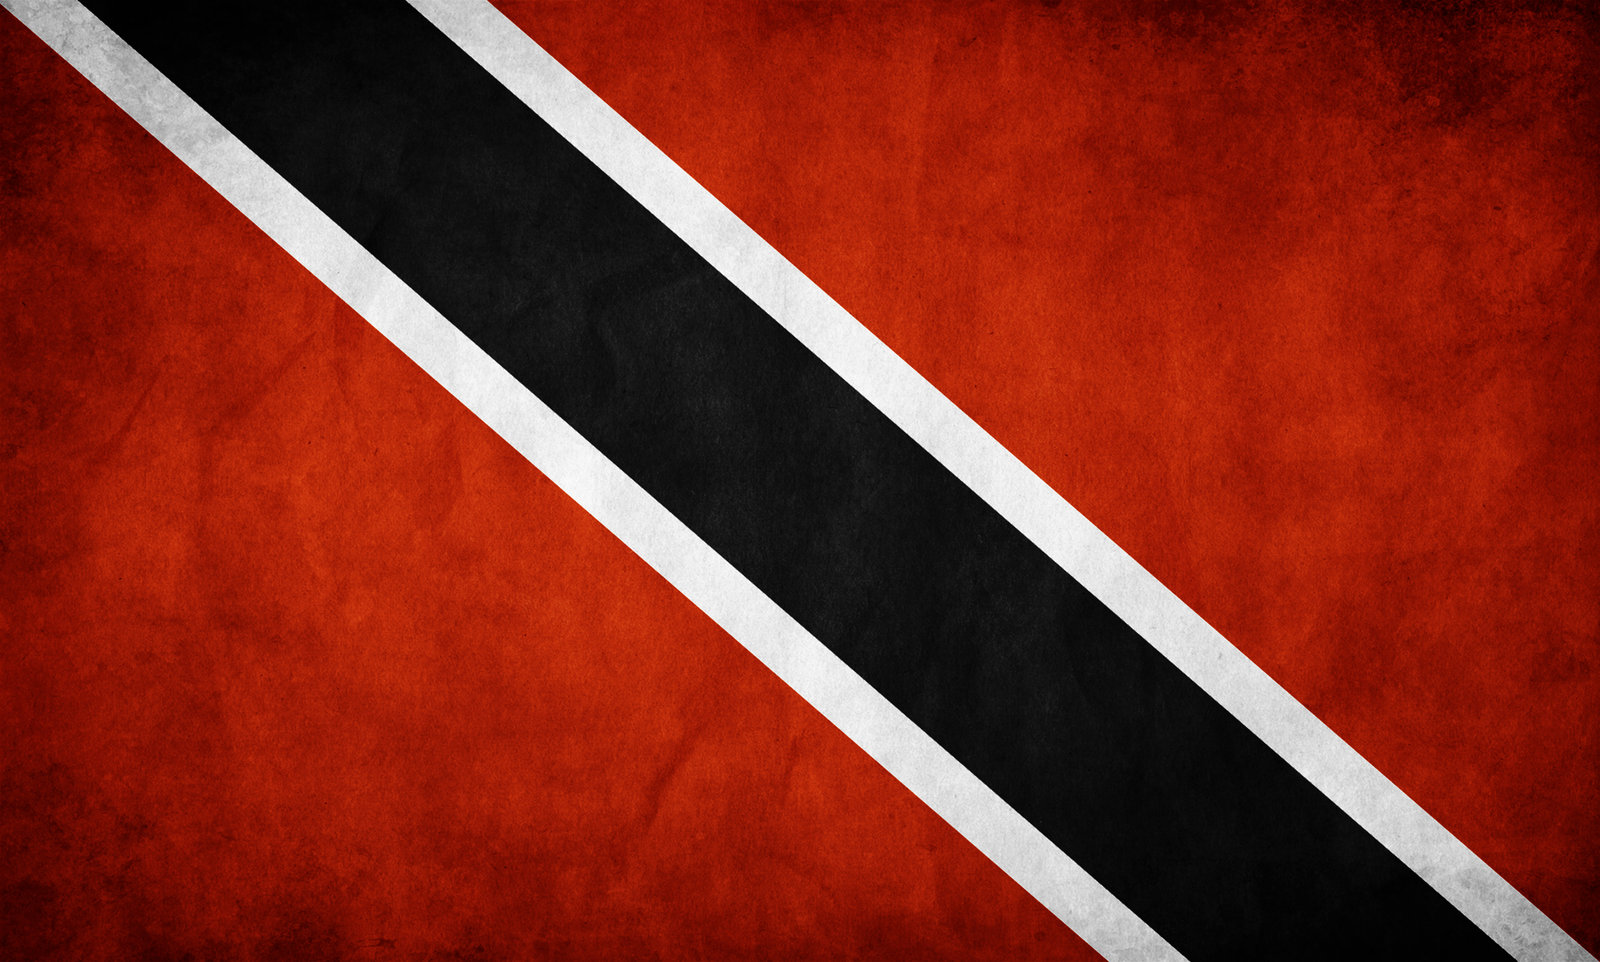 trinidad_grunge_flag_by_think0-d2kzelc.jpg